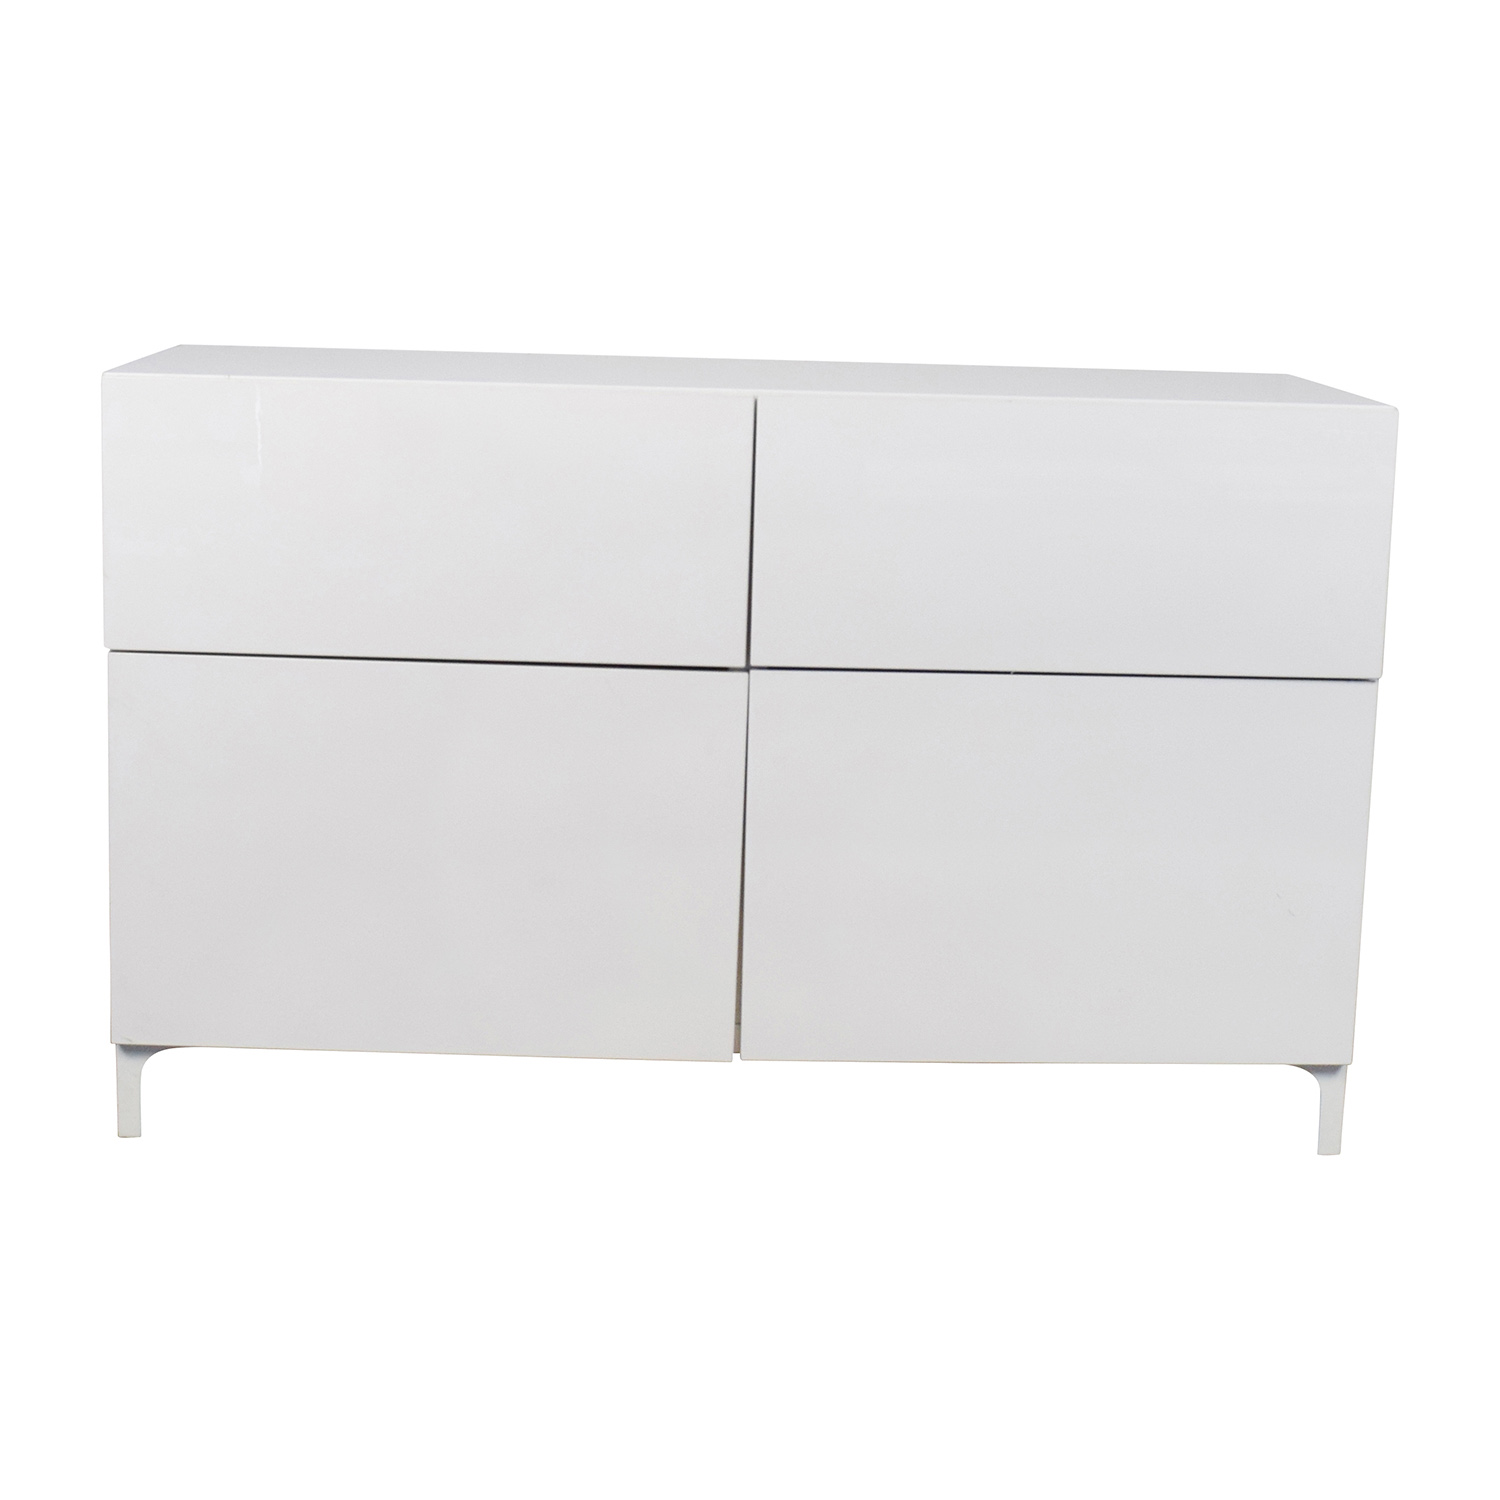 Ikea ikea besta white cabinet for sale